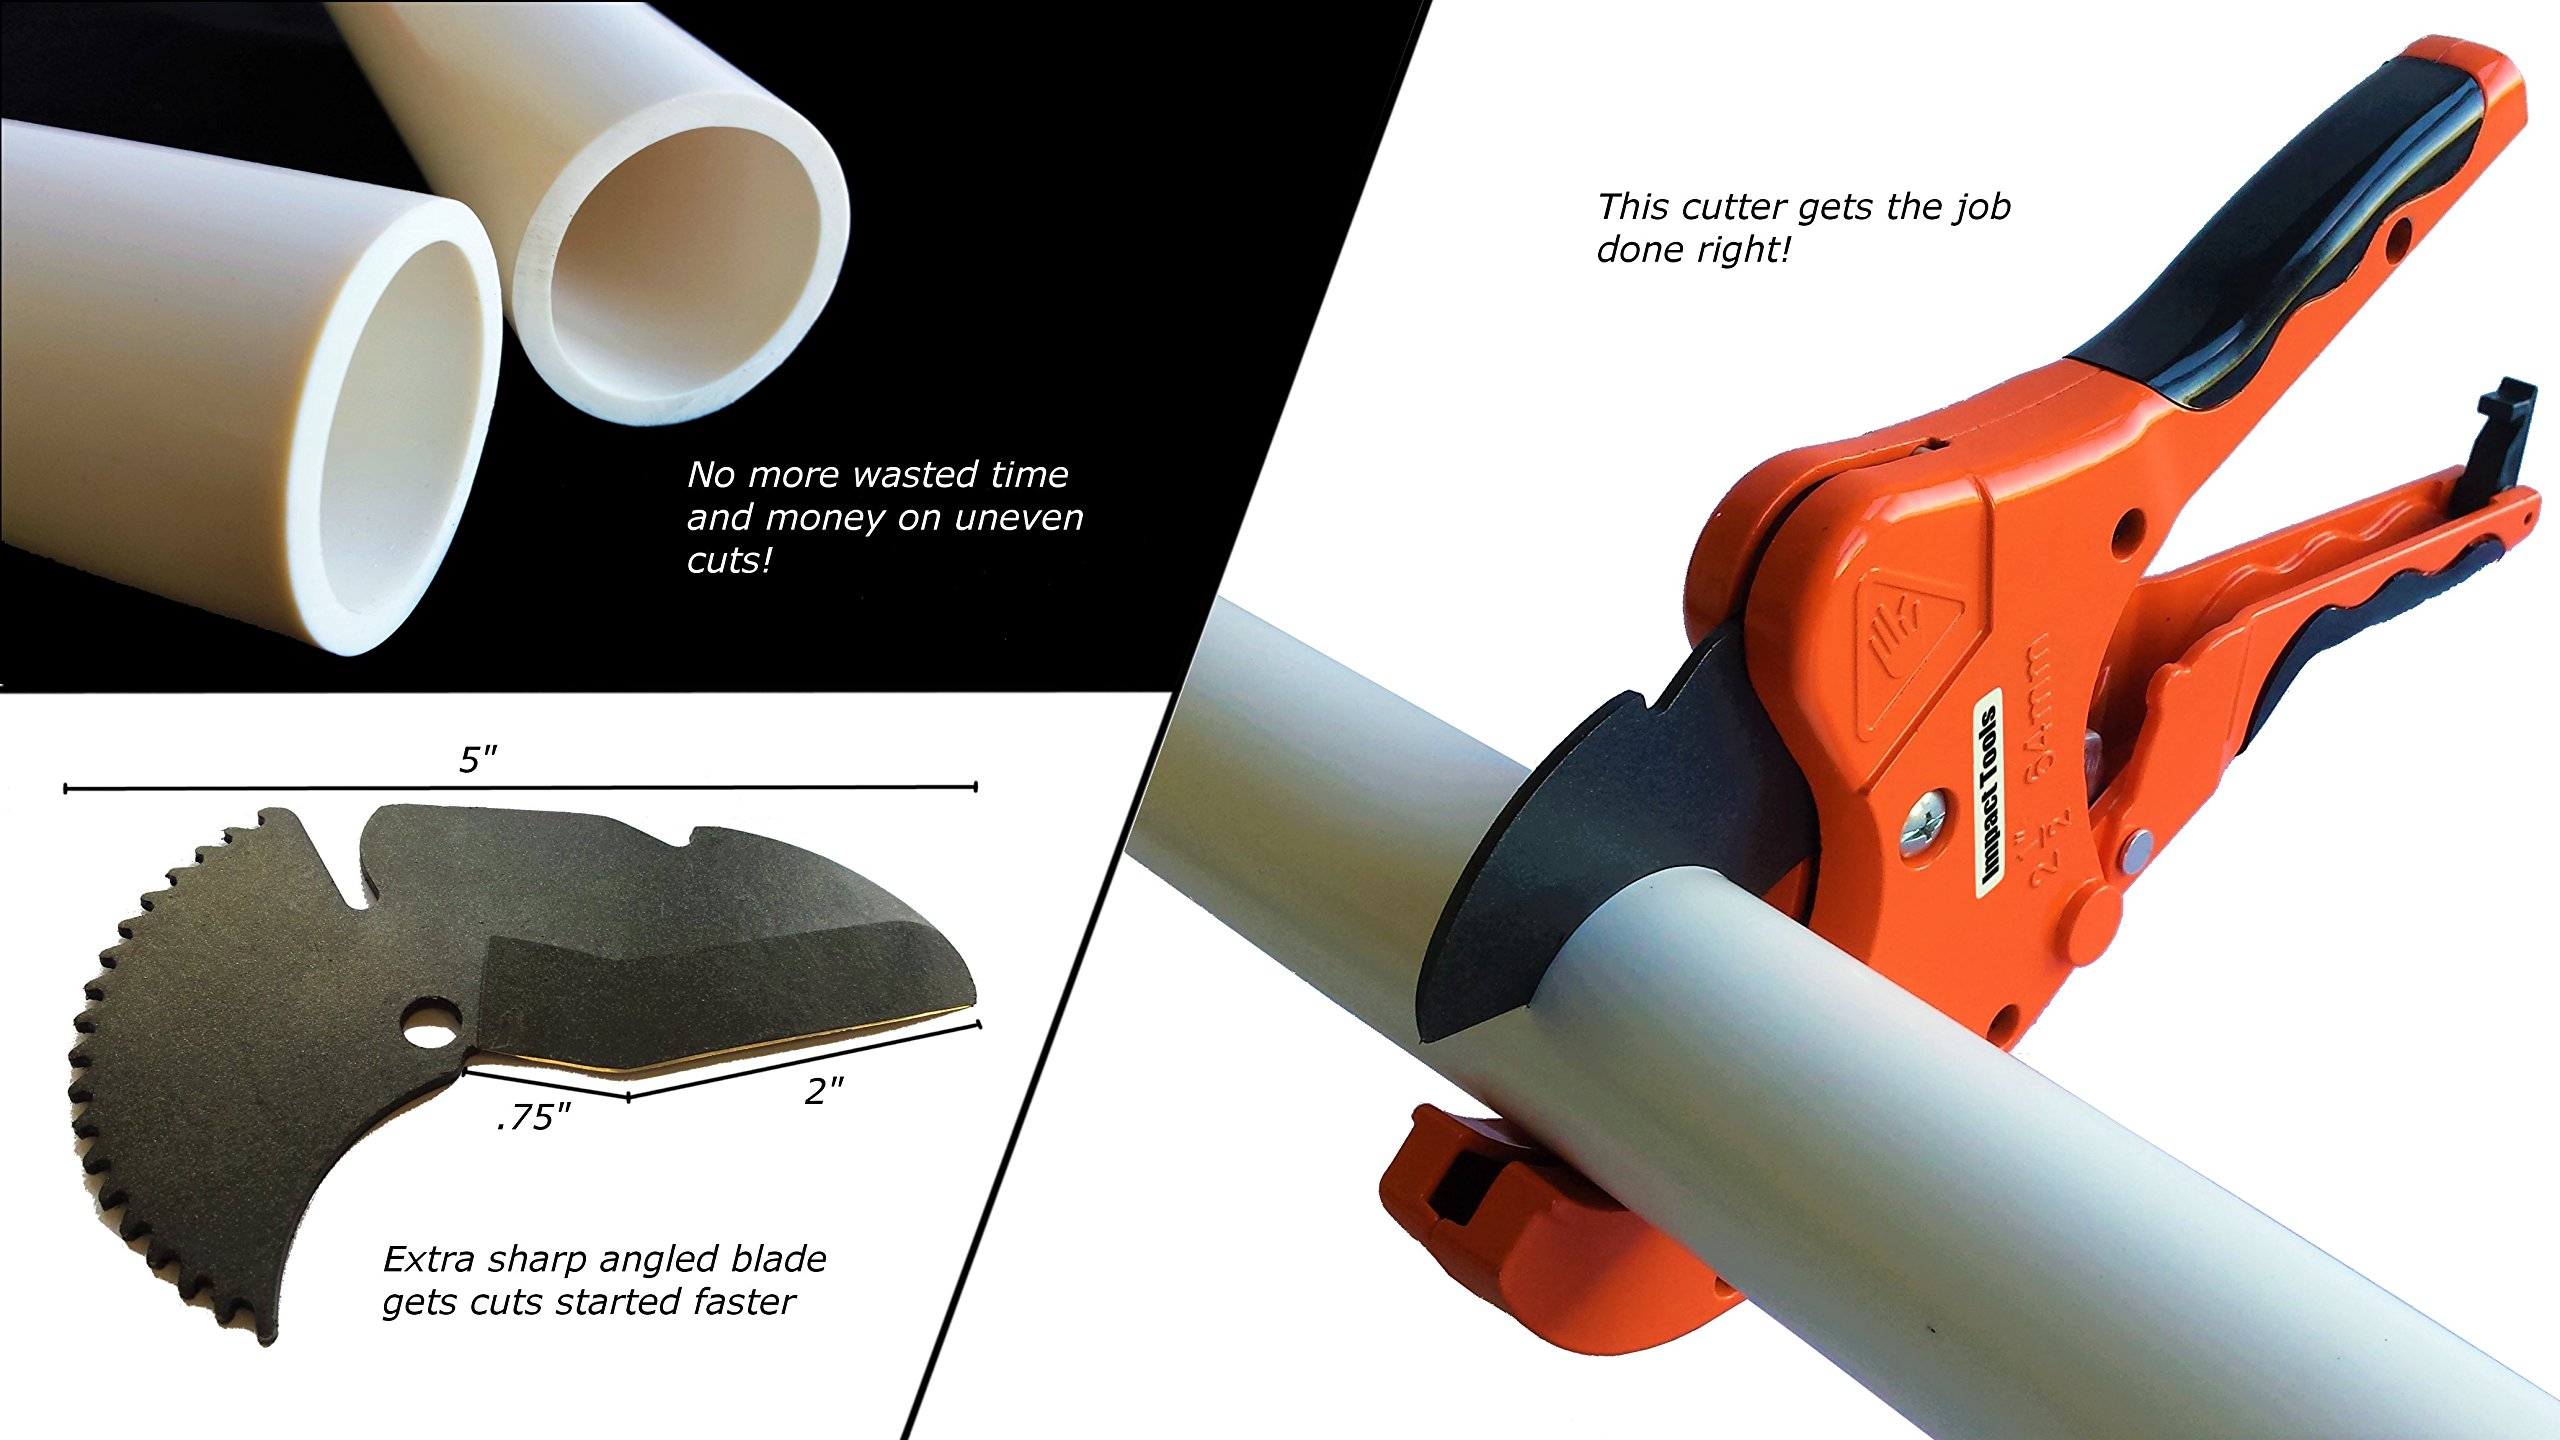 PVC Pipe Cutter | Cuts up to 2.5 Inch Diameter | One Handed Heavy Duty Ratchet Plastic Pipe and Tube Cutter Tool for PVC CPVC PEX PE PPR and more | Perfect for Plumbing and Irrigation Pipe by Impact Tools (Image #3)